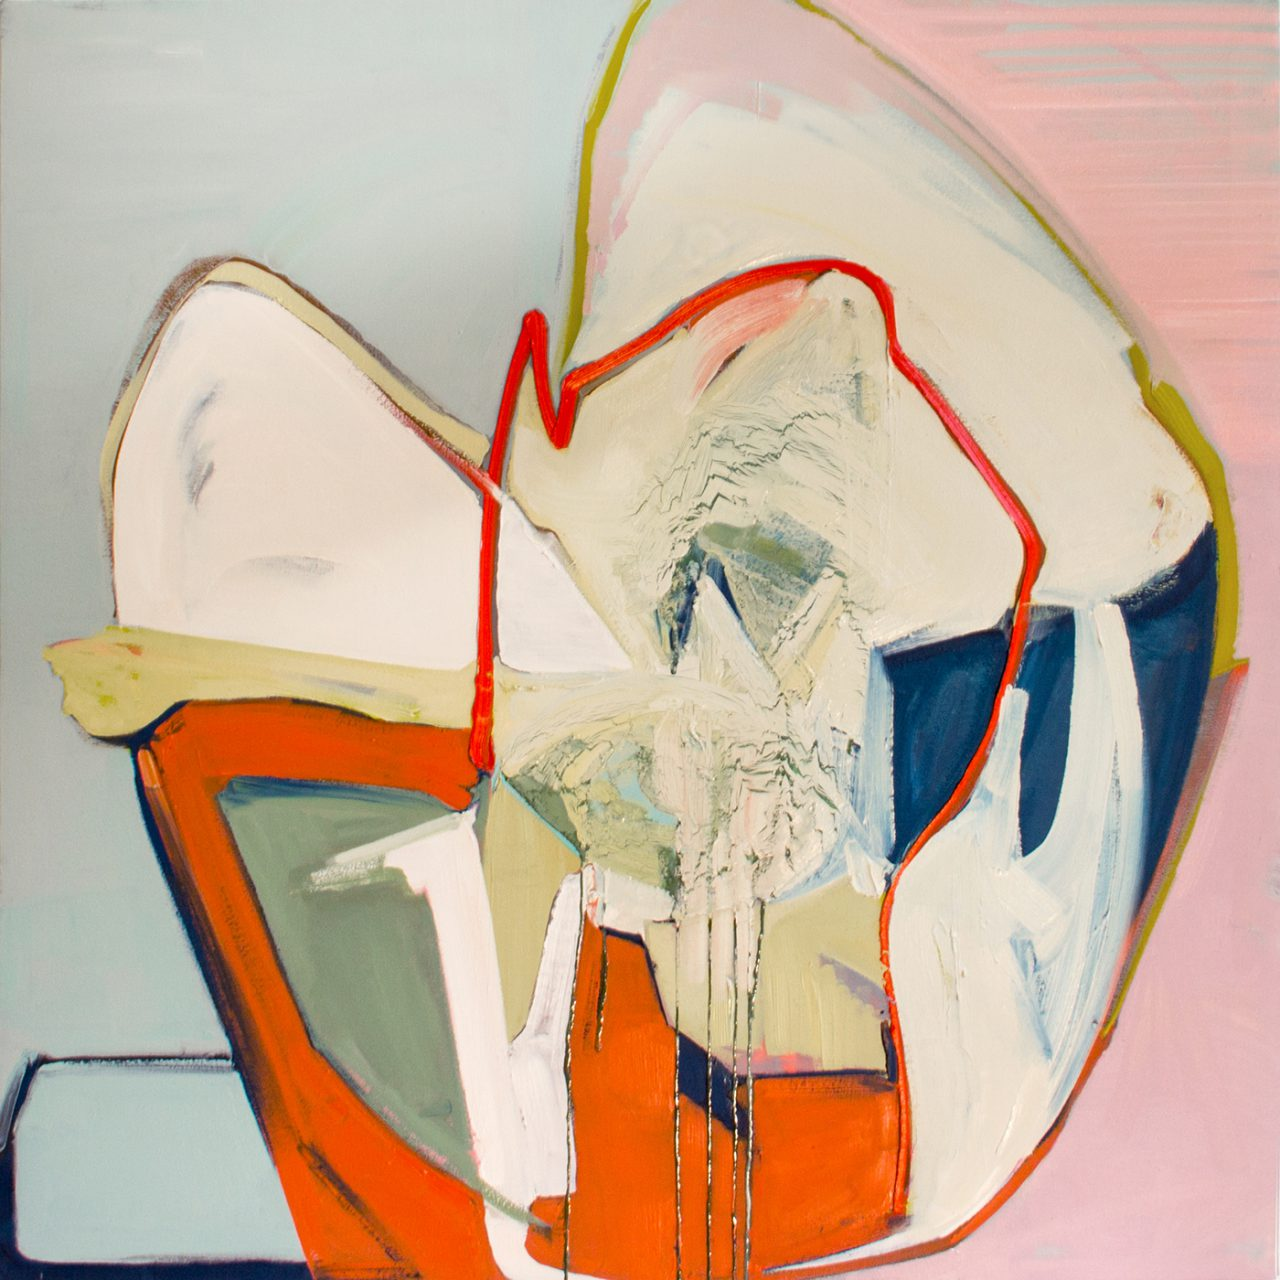 HERMES N° 0,3428 / OIL ON CANVAS / 100 x 100 cm